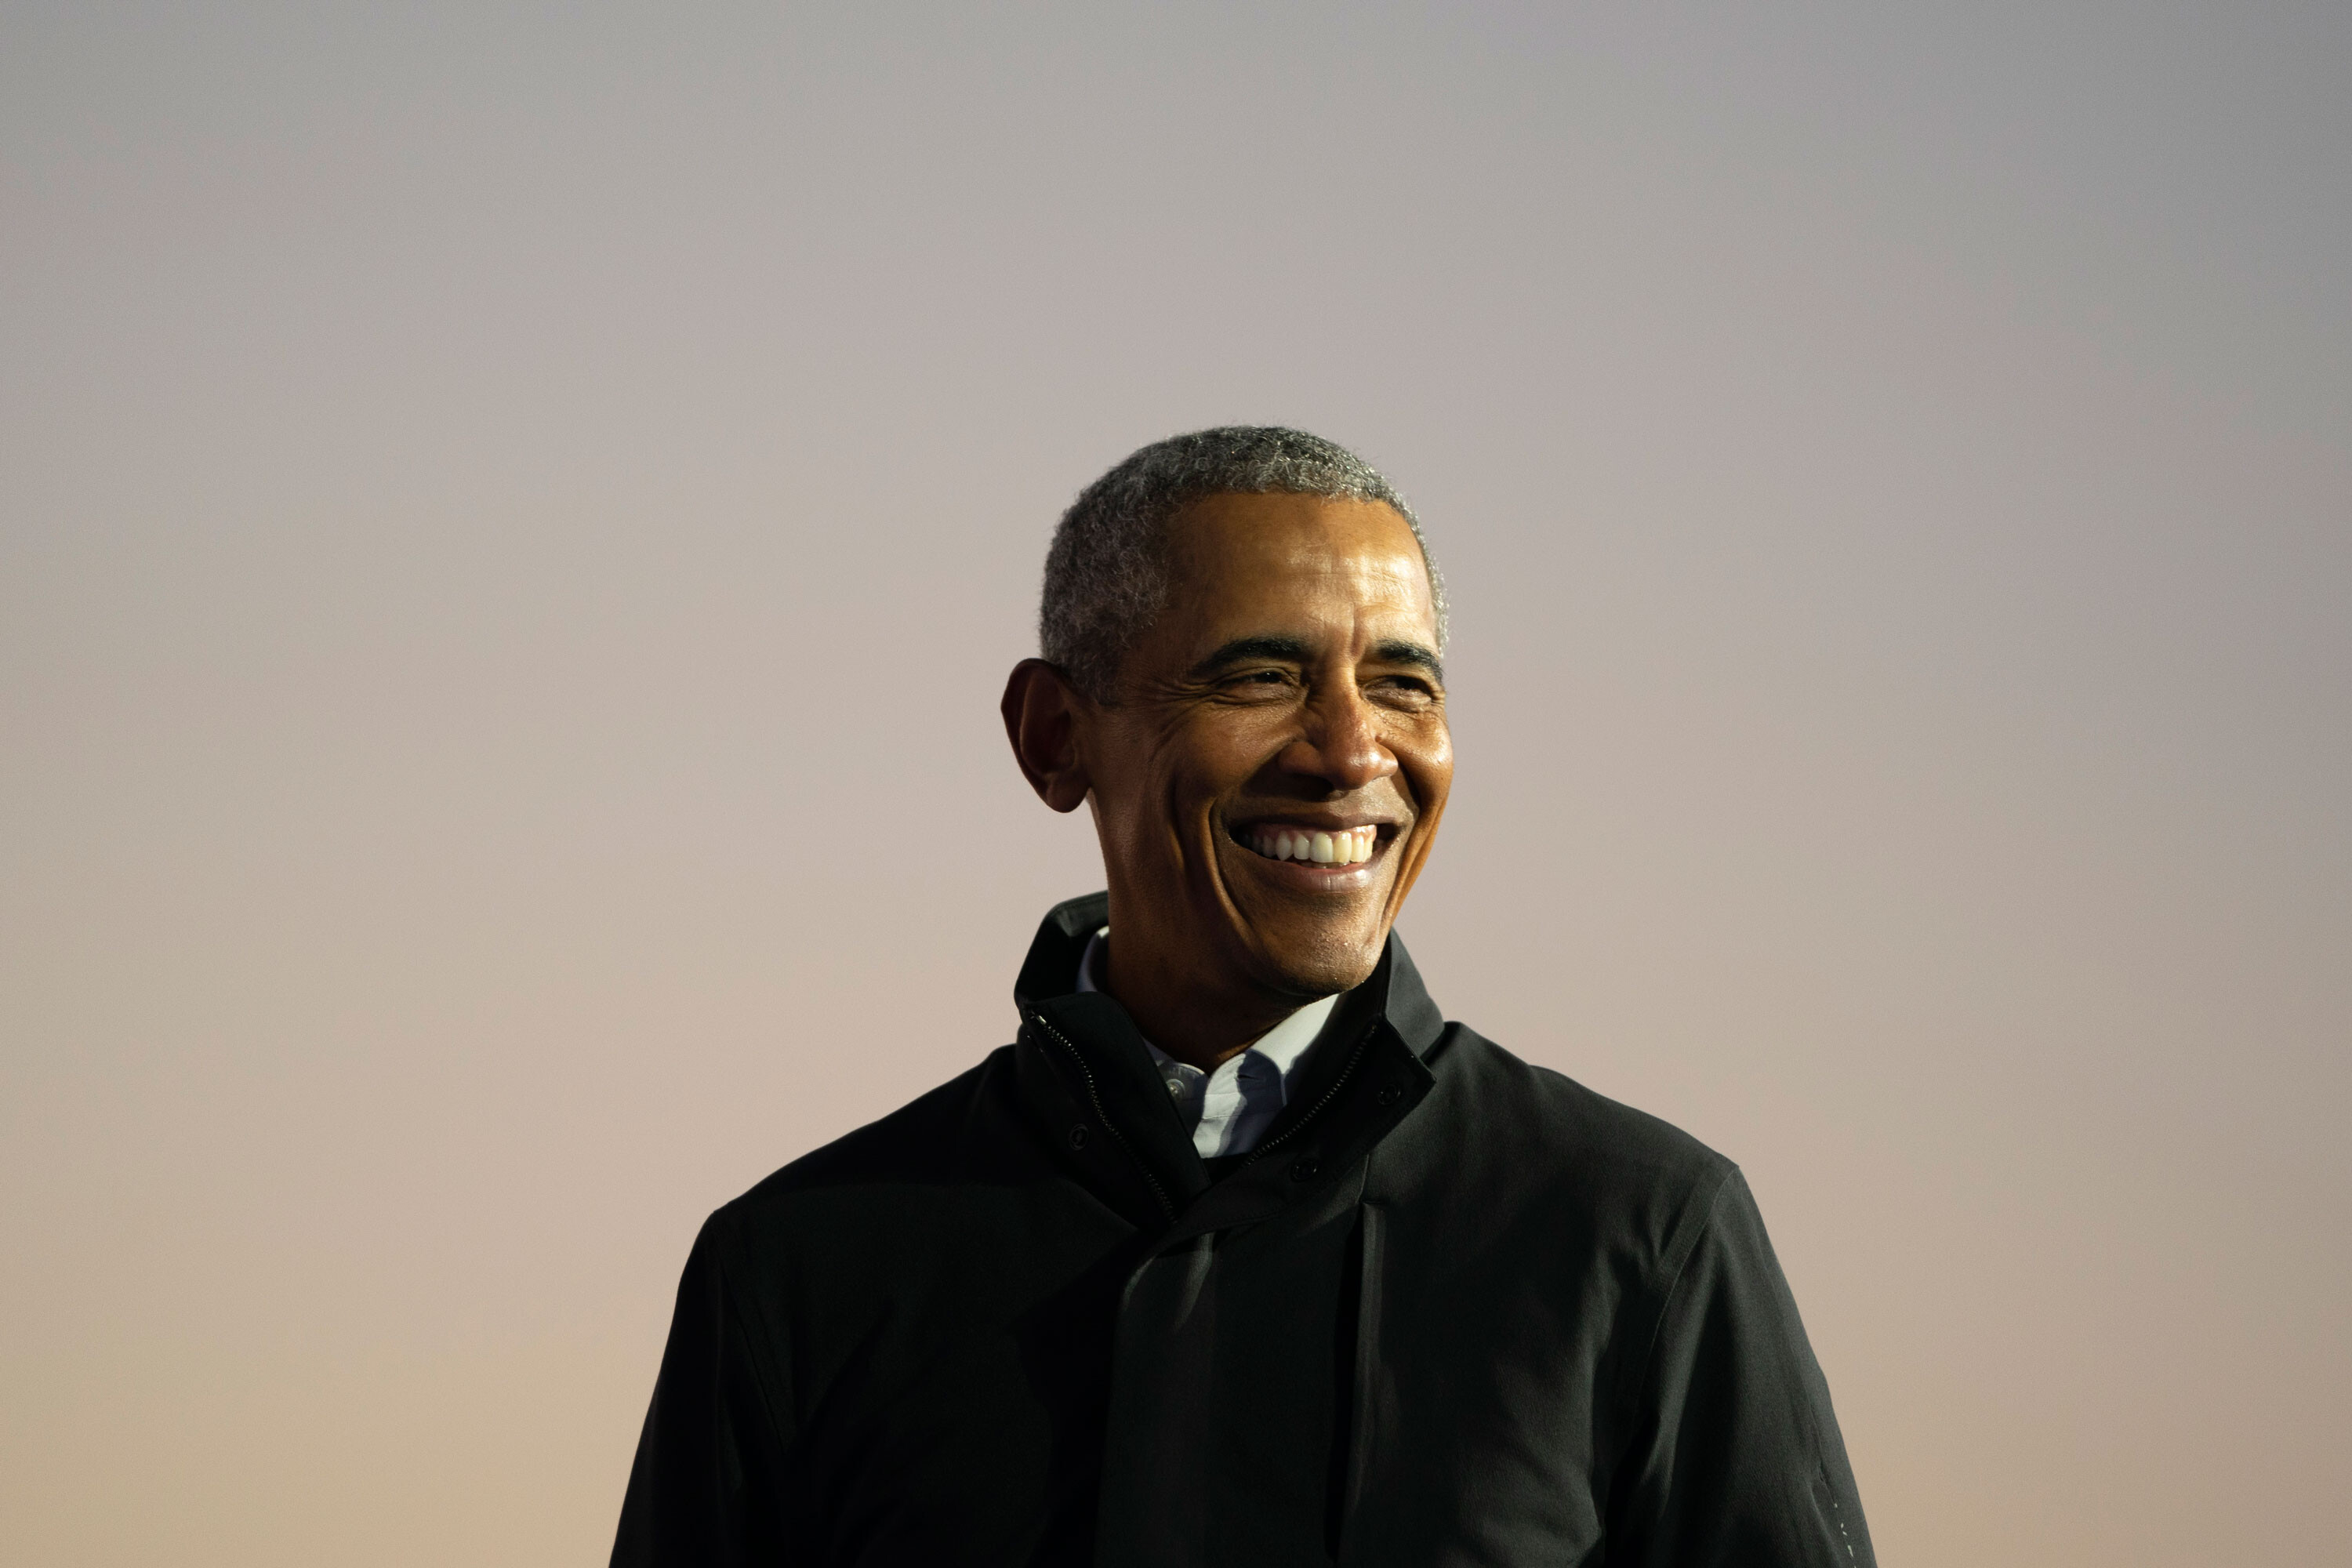 Barack Obama's 38-song summer playlist includes everyone from J. Cole to Bob Dylan